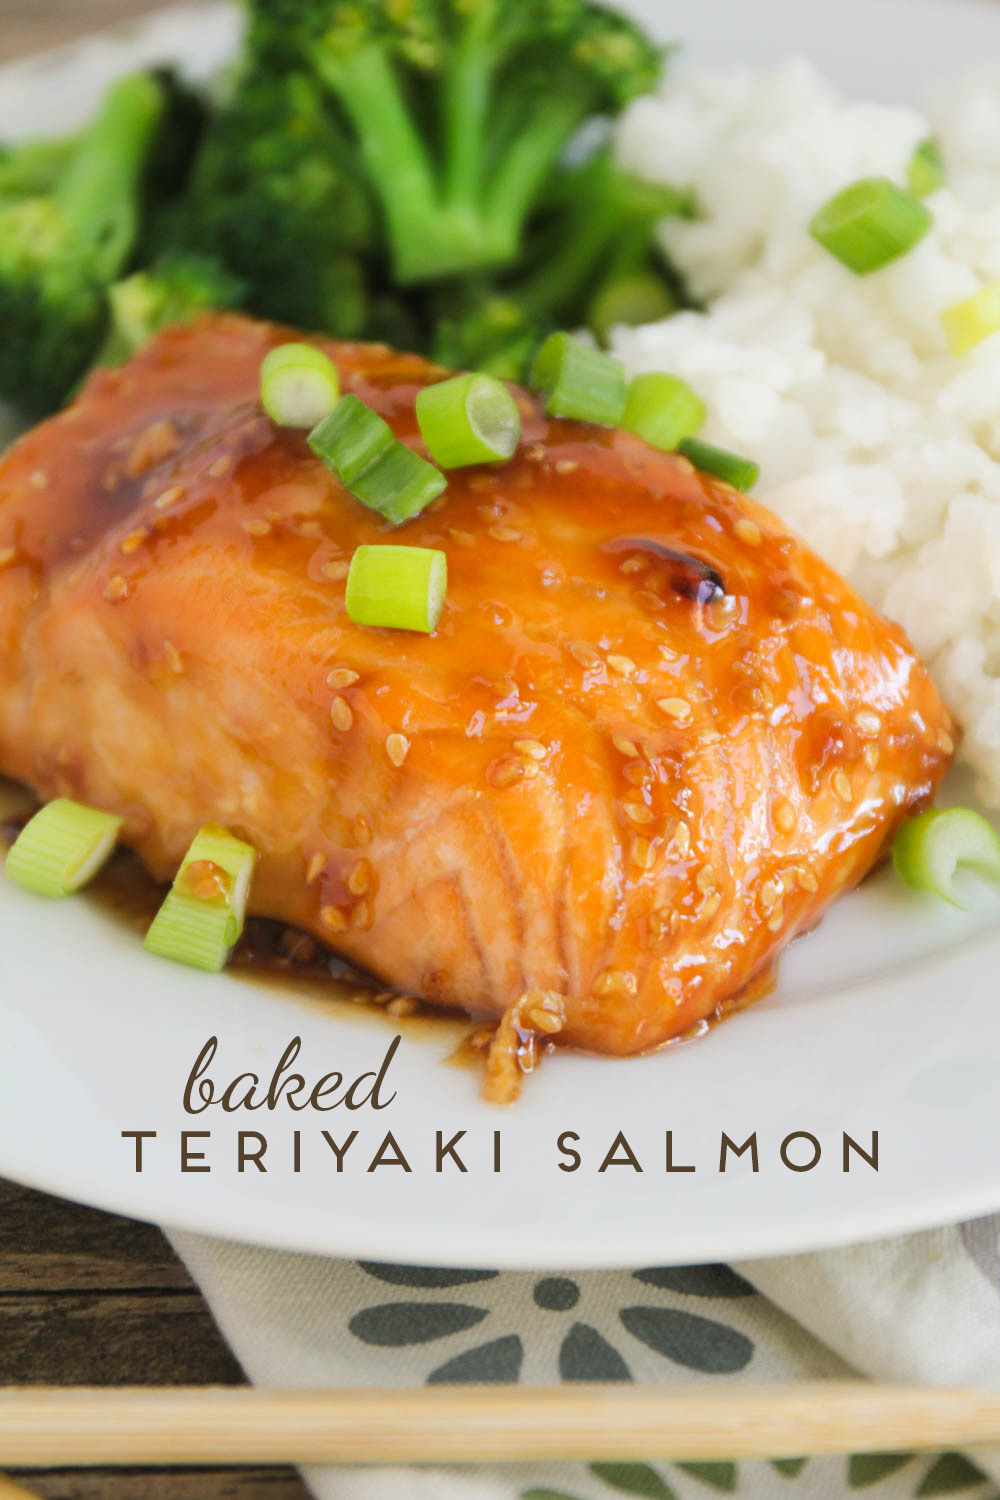 This baked teriyaki salmon is super simple to make and incredibly flavorful and delicious!